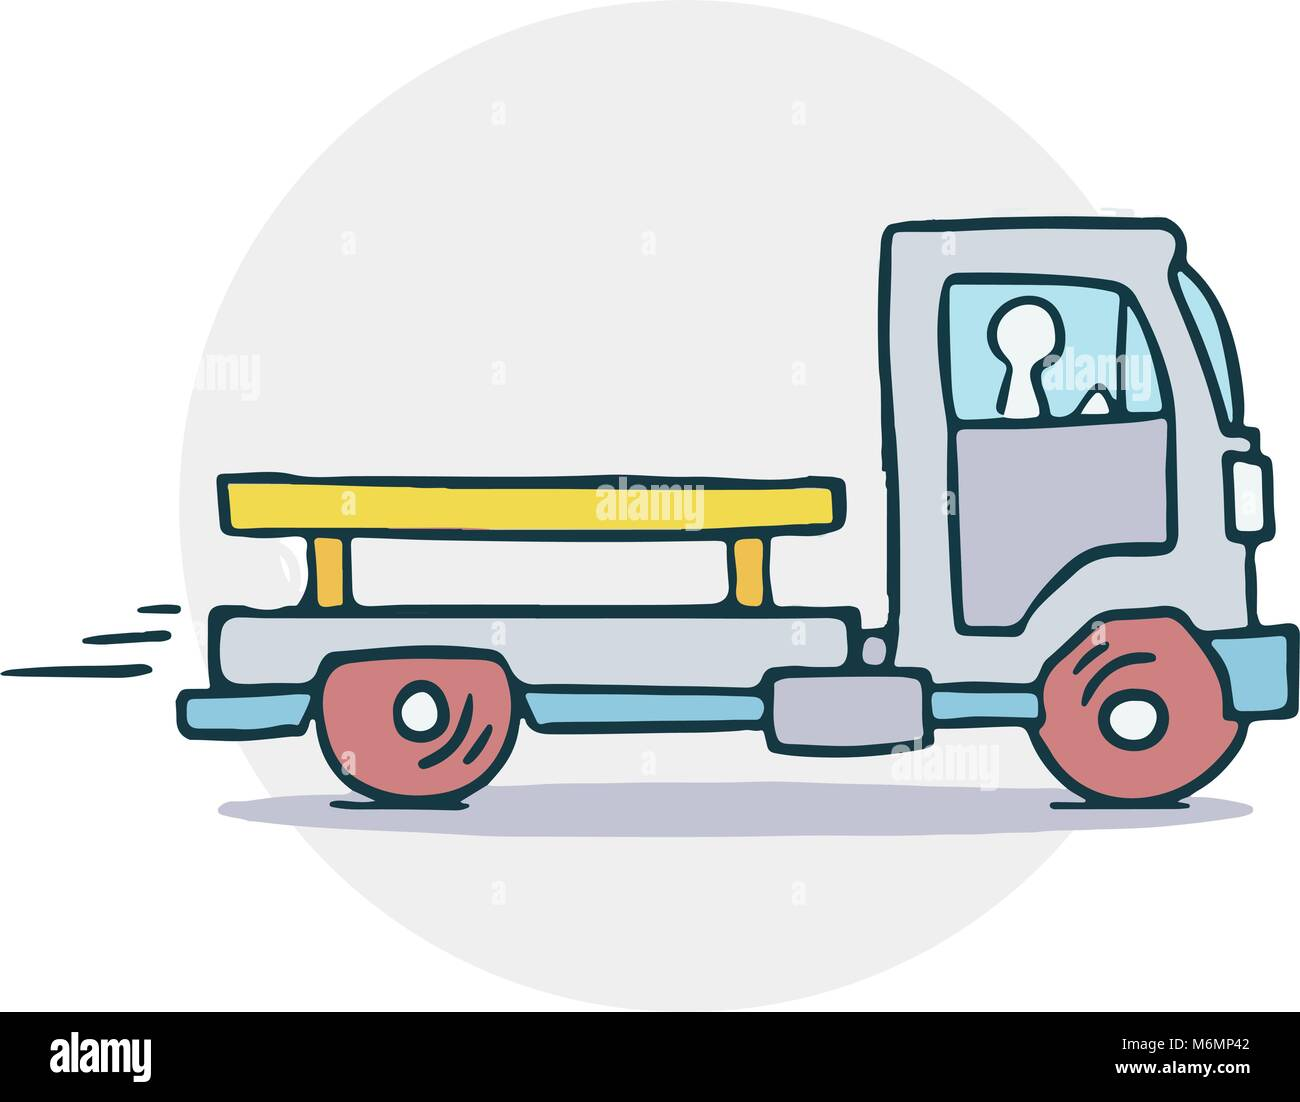 Truck with trailer illustration - Stock Vector